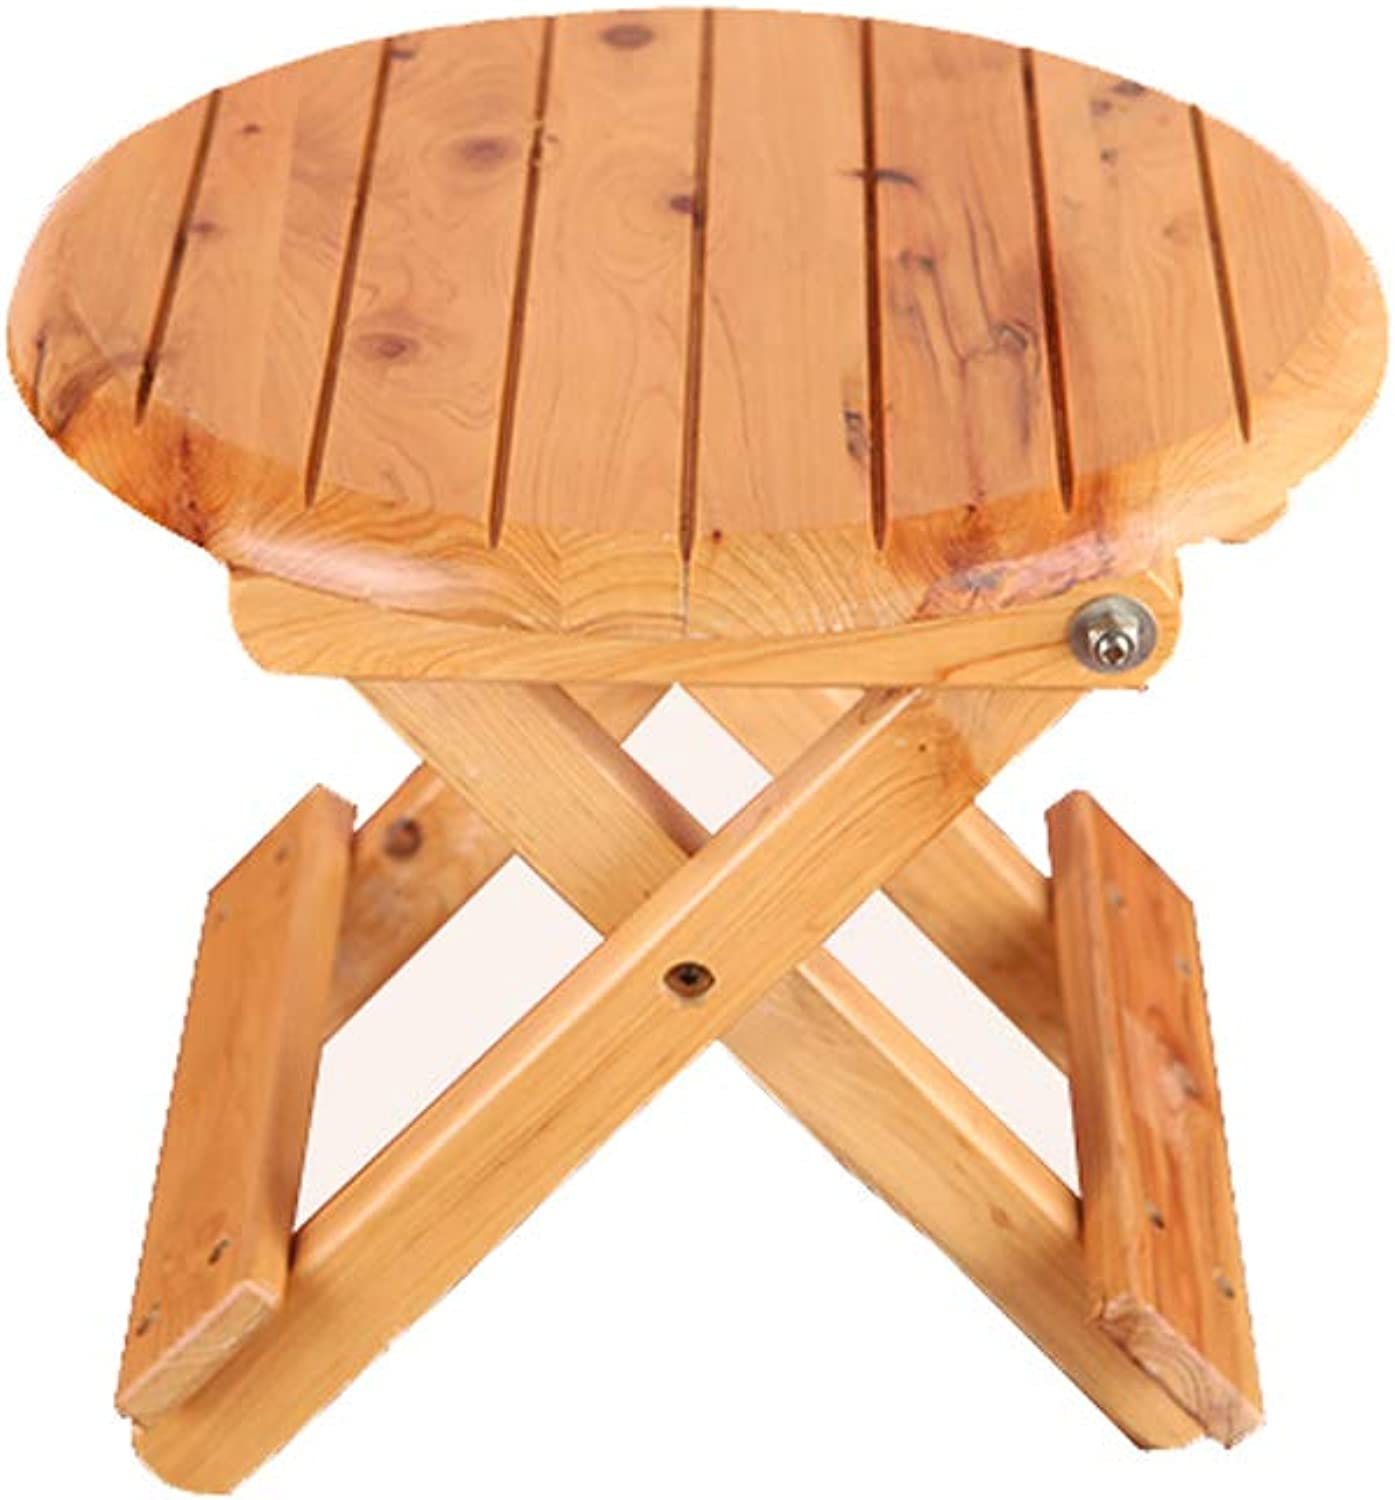 LIUXUEPING Stool, Low Stool, Foldable Small Bench, Solid Wood Stool, Fishing Stool, Simple Portable Stool